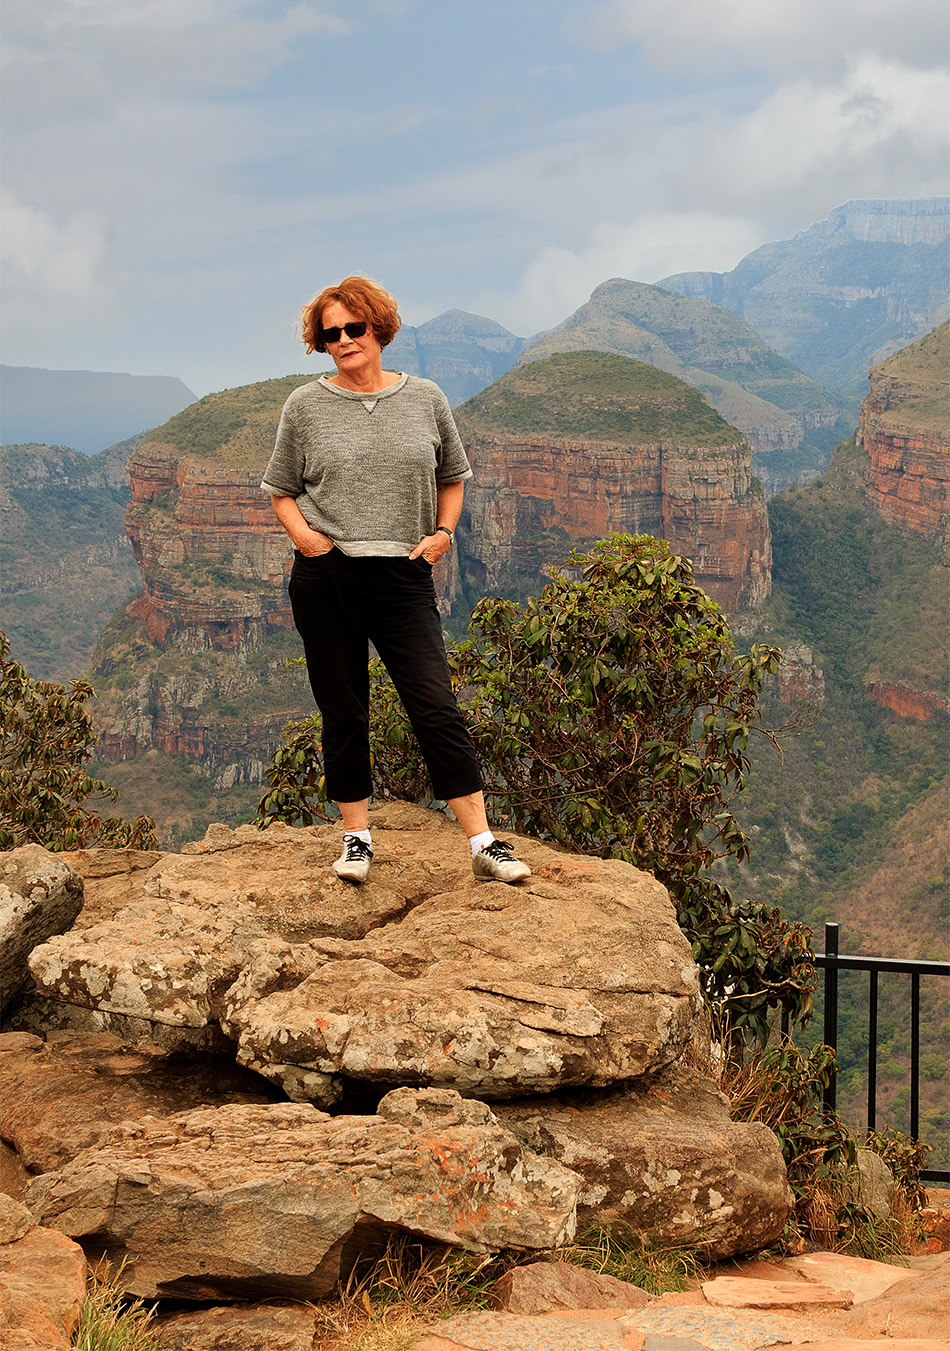 Even poseren bij de Drie Rondavels | Graskop, Blyde River Canyon – 15 november 2014